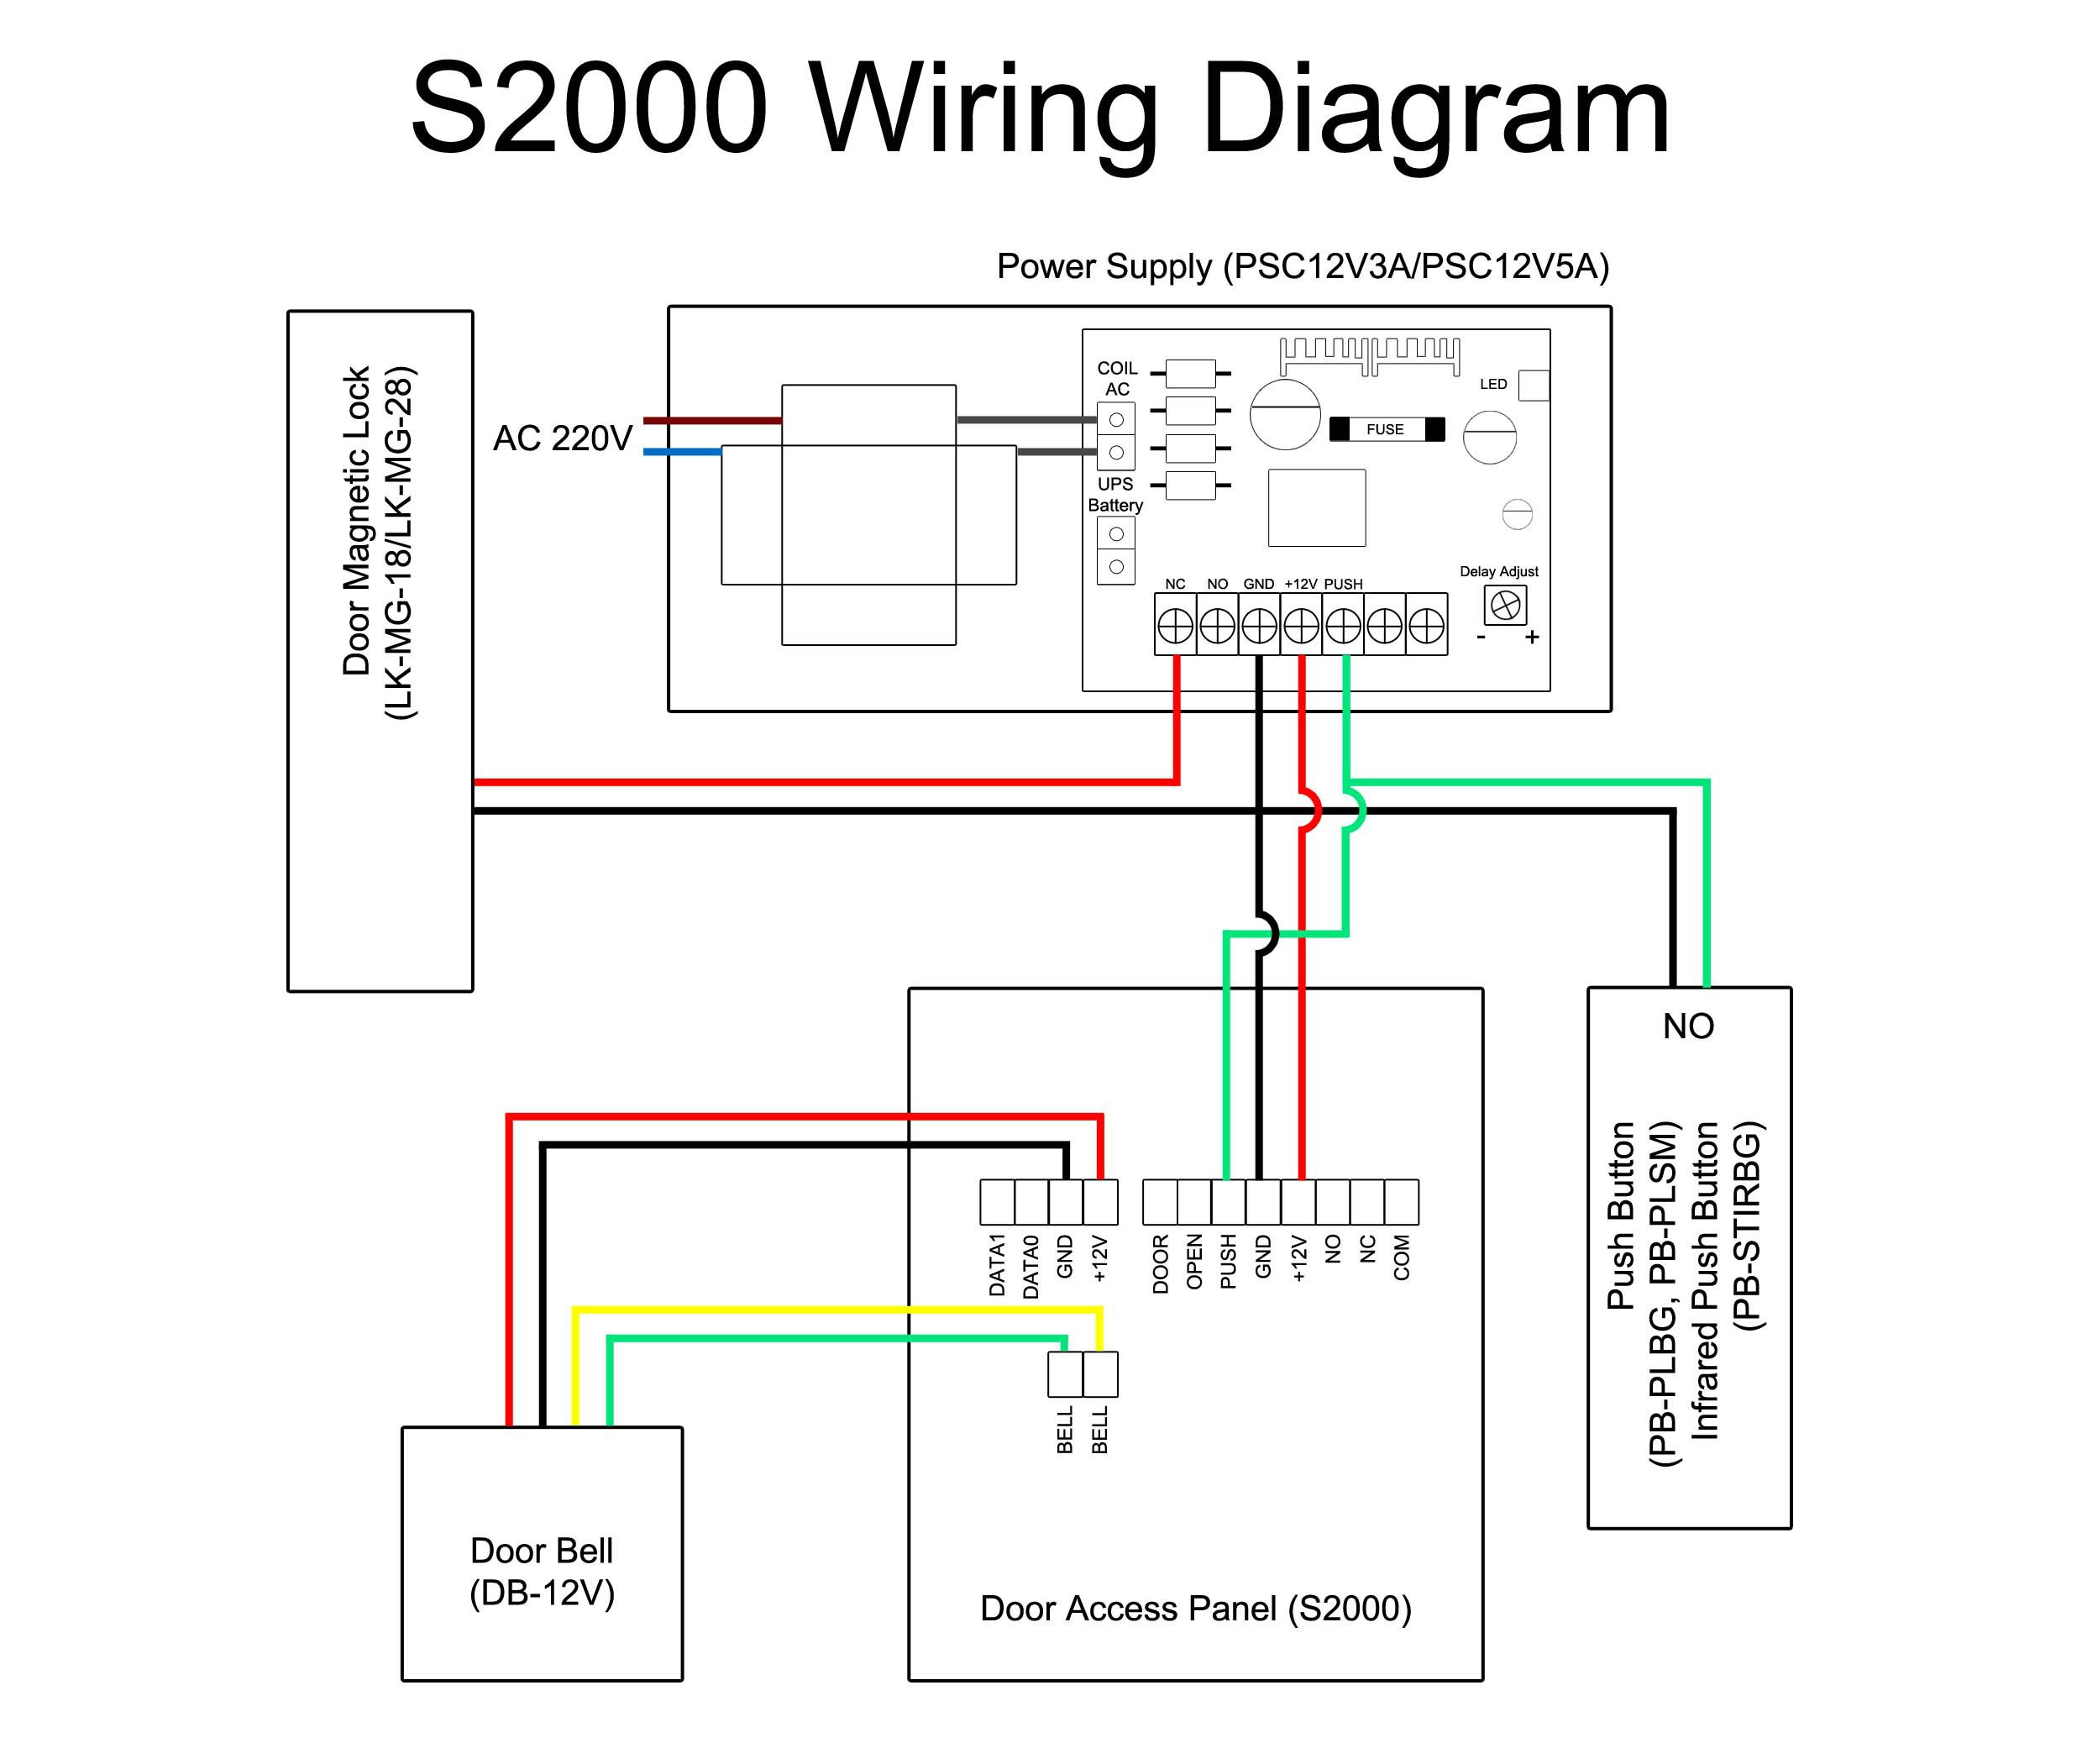 samsung security camera wiring diagram Collection-Wiring Diagram for Home Security Camera Save Home Cctv Wiring Diagram Save Best Harbor Freight 3-g